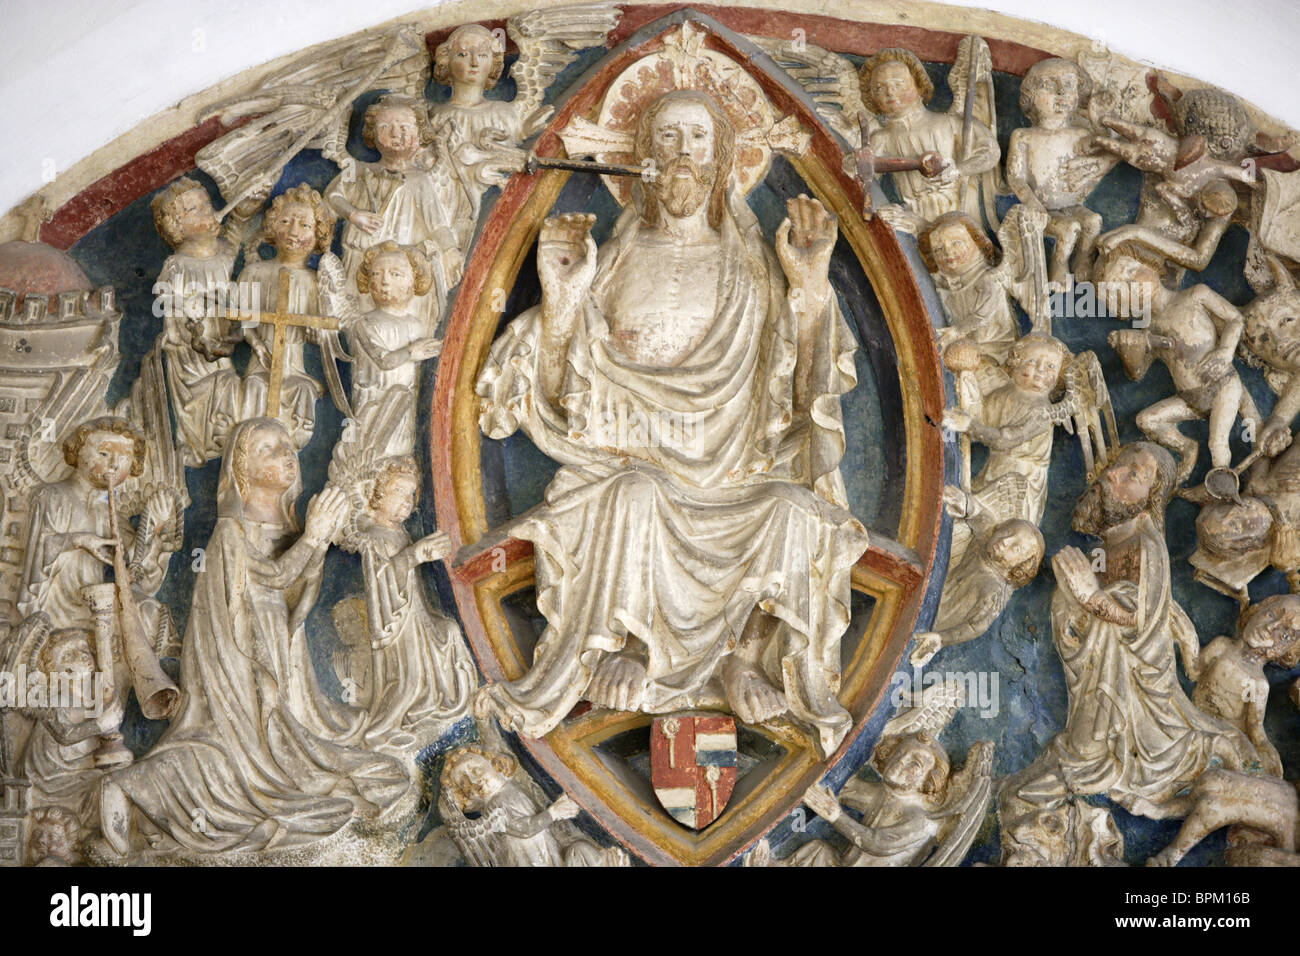 A wood depiction of god in the museum of the dome, Eichstaett, Upper Bavaria, Bavaria, Germany - Stock Image